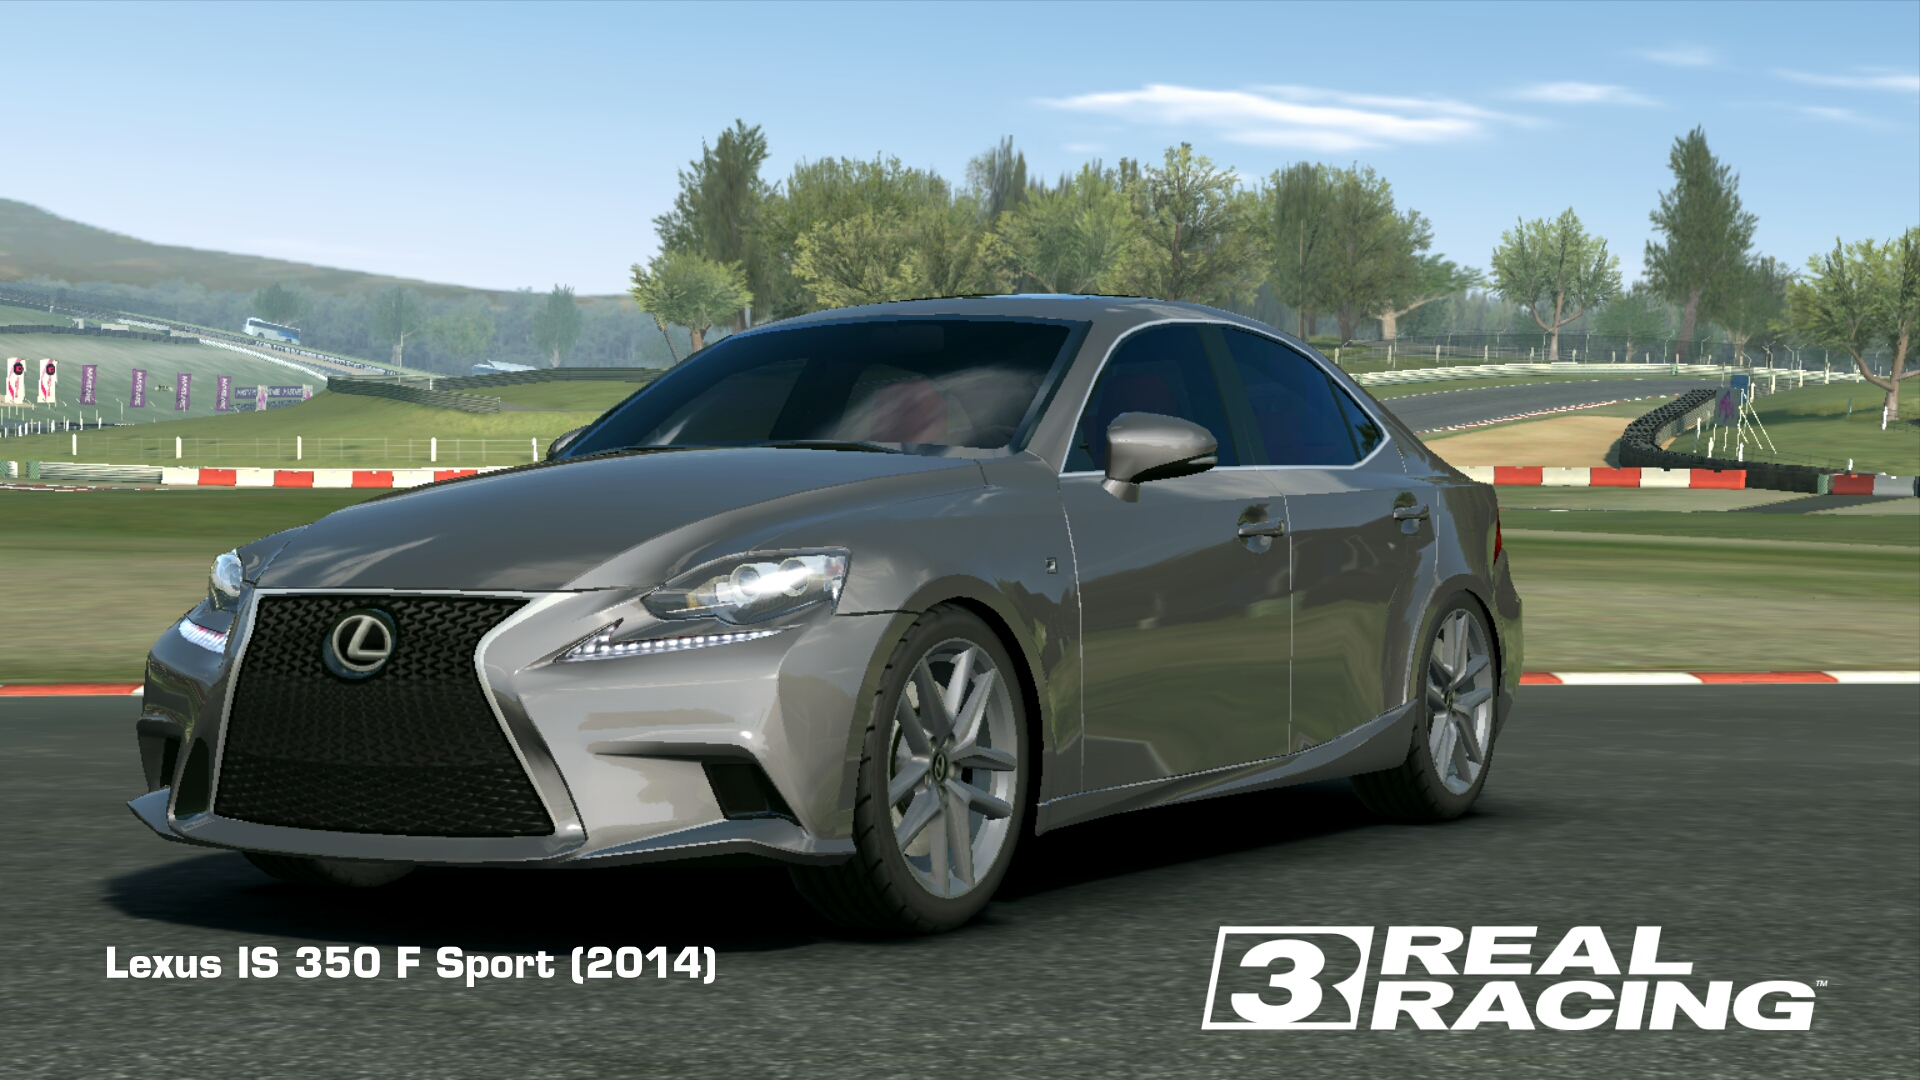 latest?cb=20150928111231 Fascinating Bugatti Veyron Price In Real Racing 3 Cars Trend